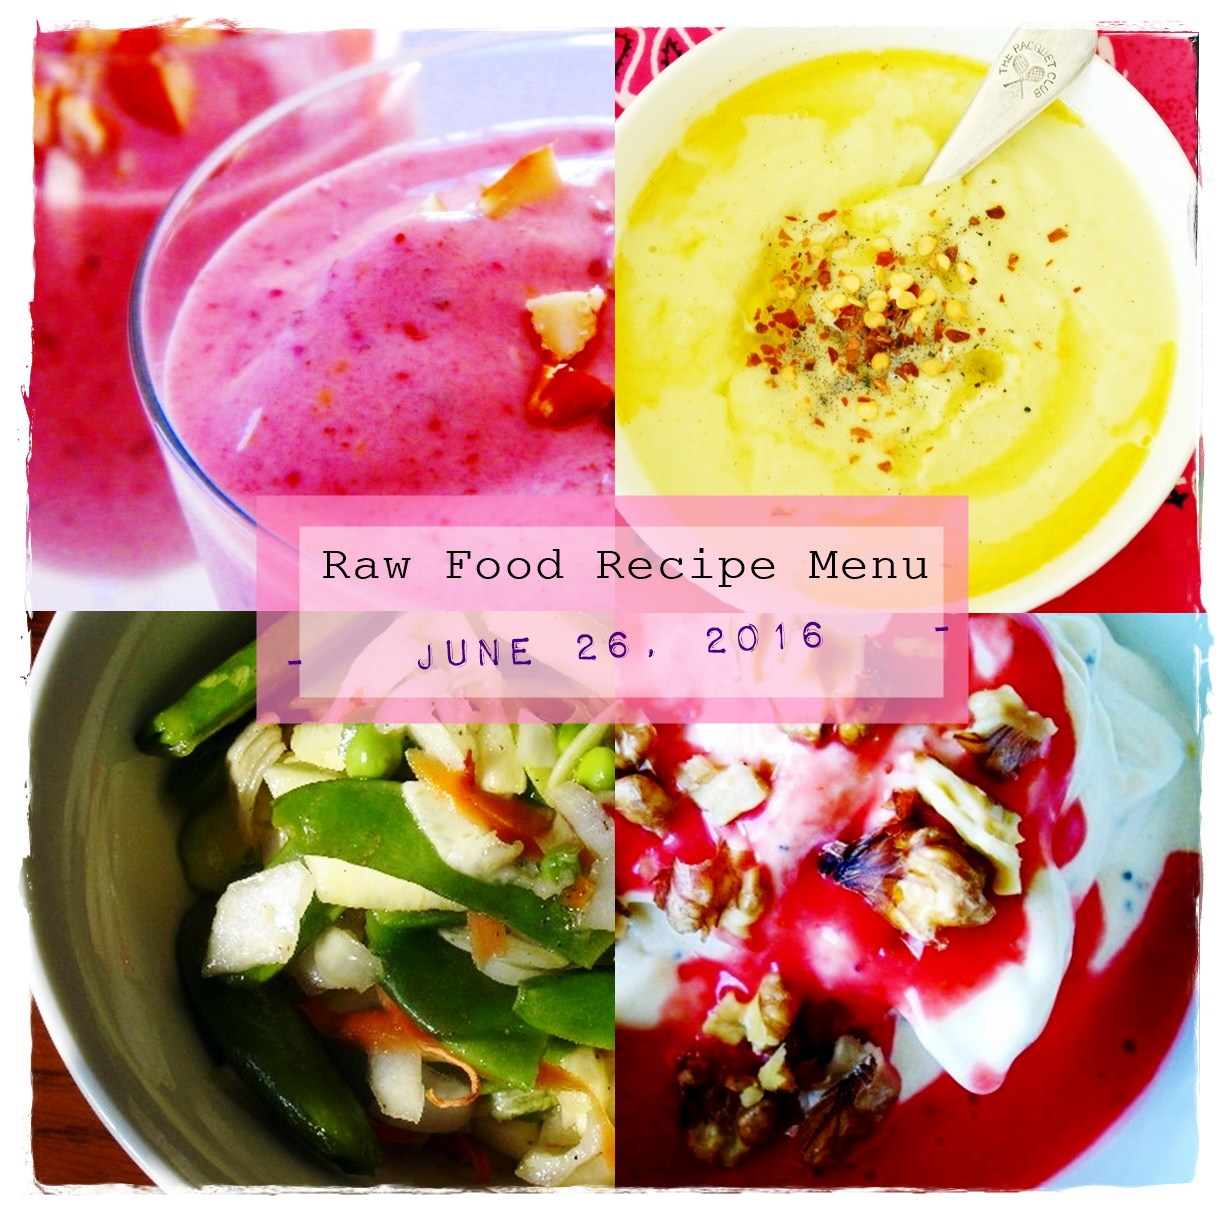 Raw on 10 a day or less raw food recipe menu june 26th 2016 forumfinder Image collections